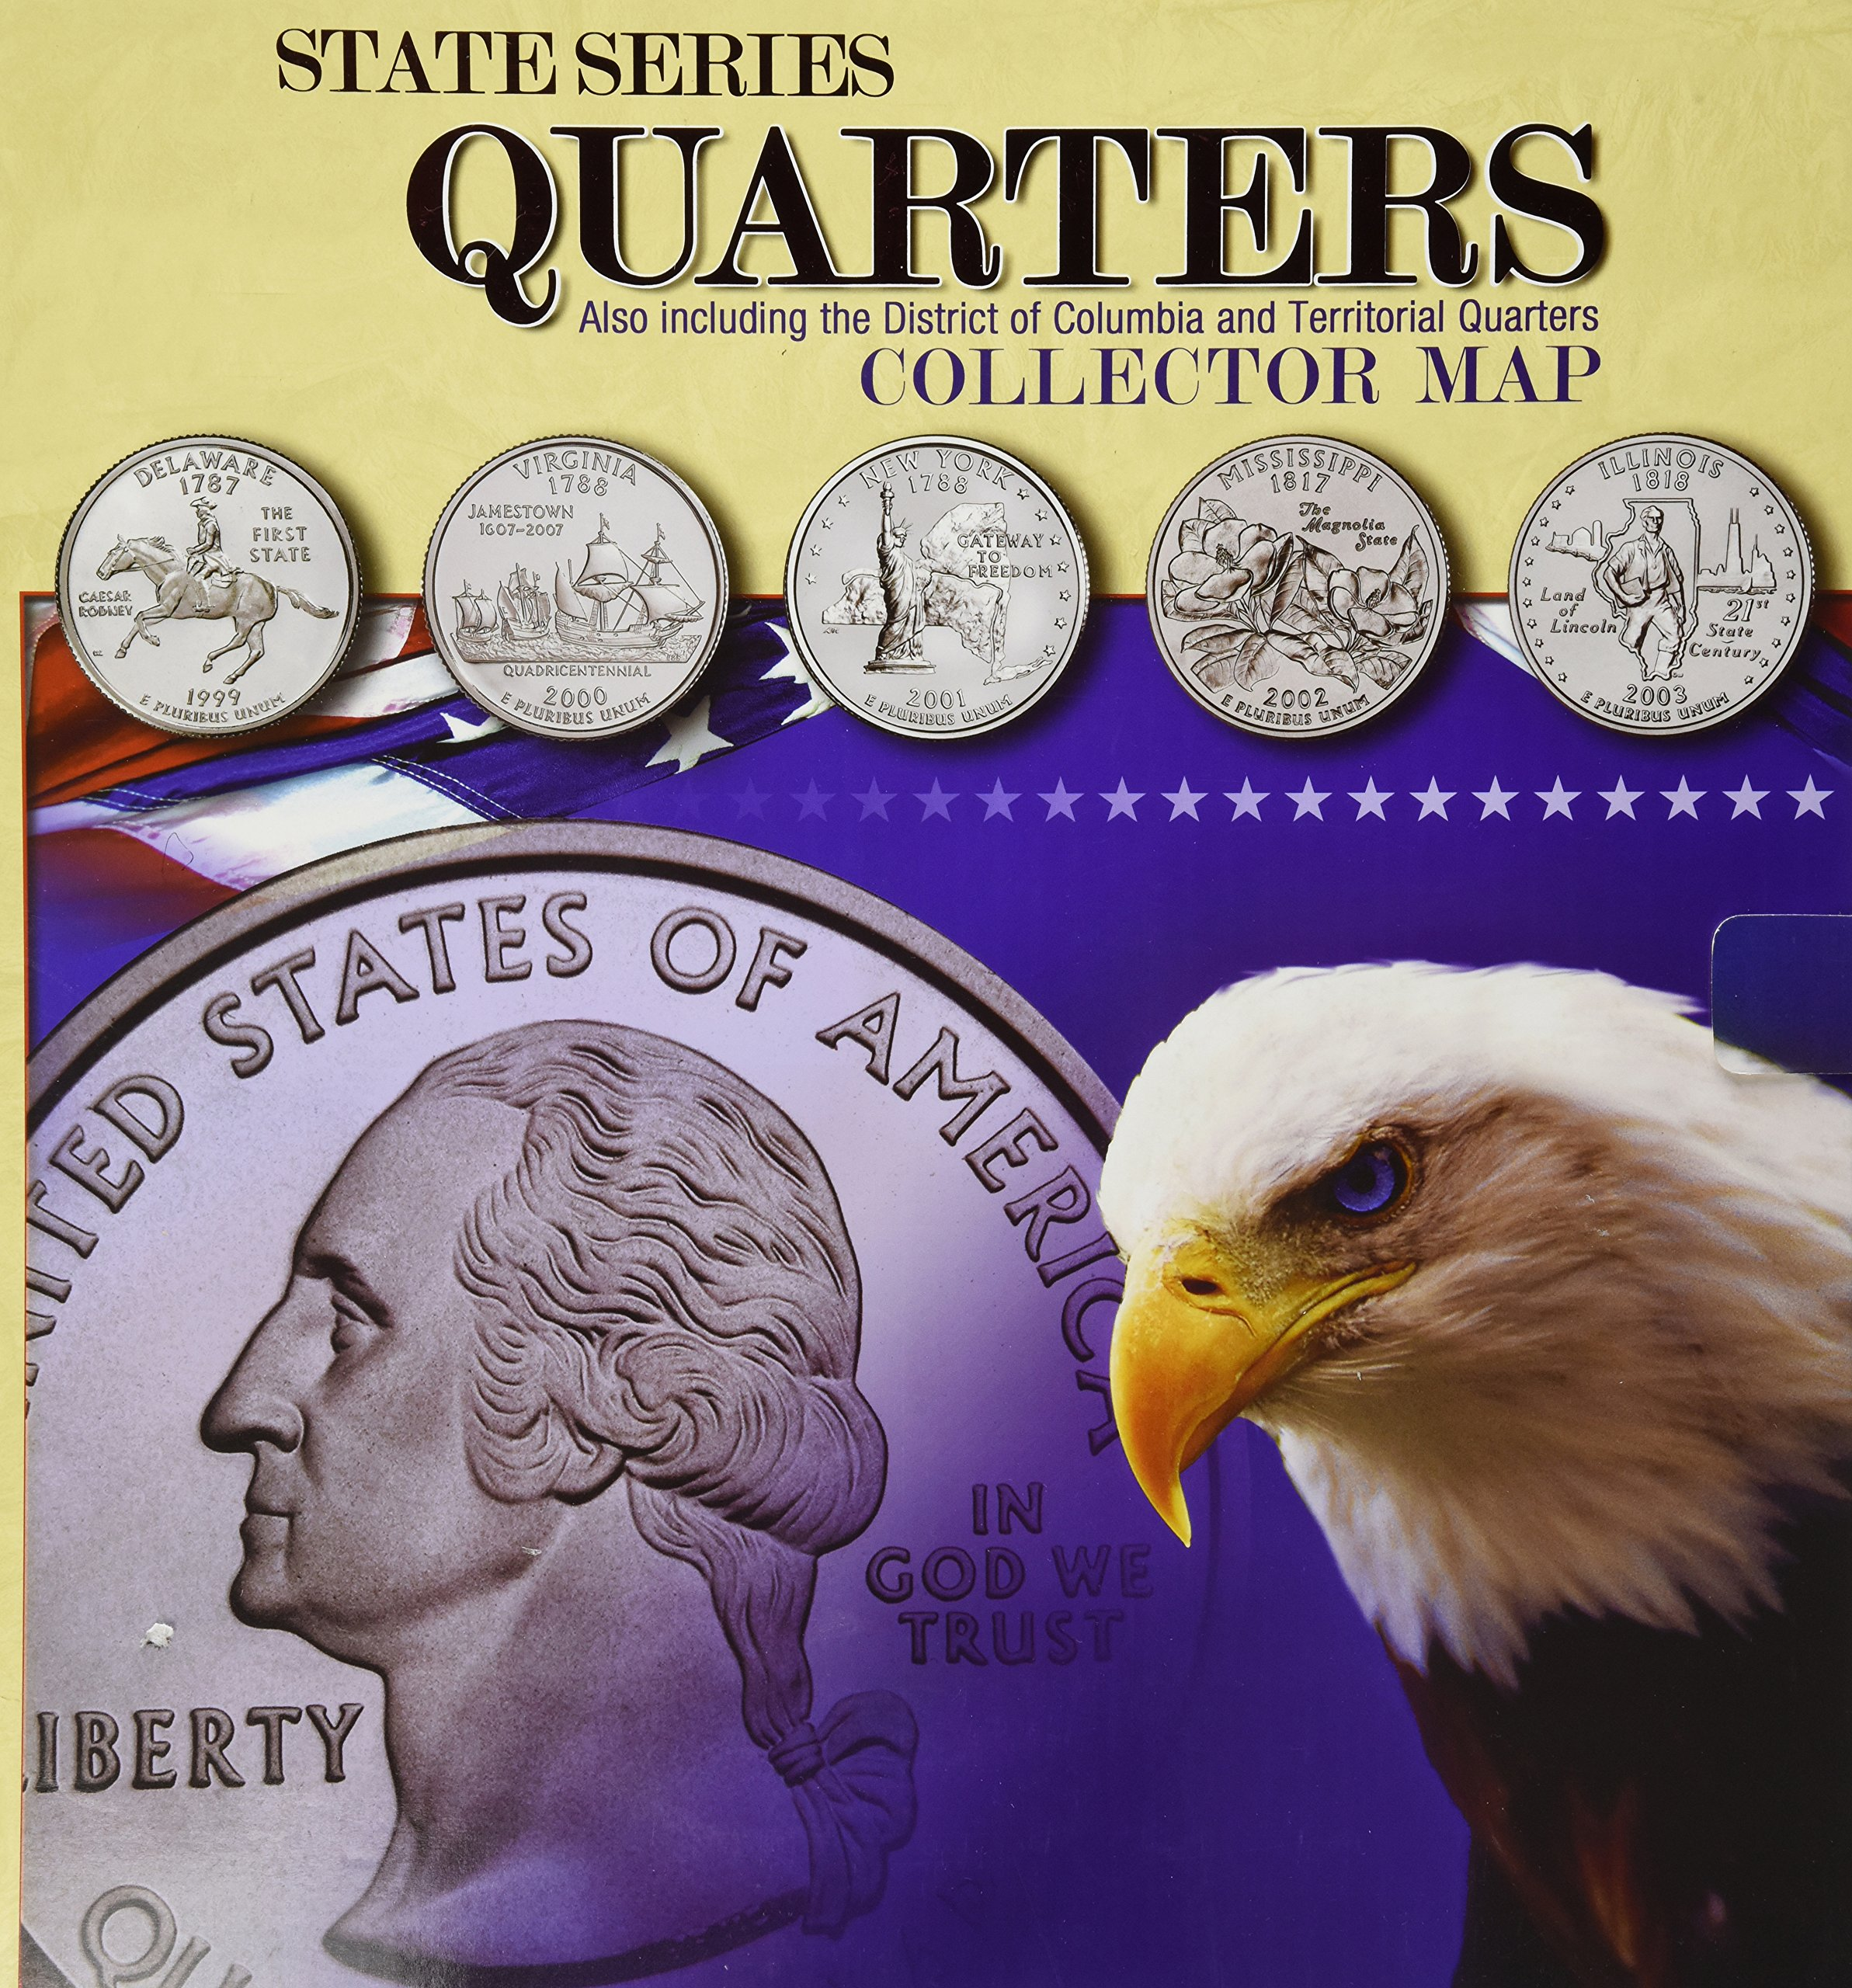 Amazon.com: State Series Quarters Collector Map: Also Including the on